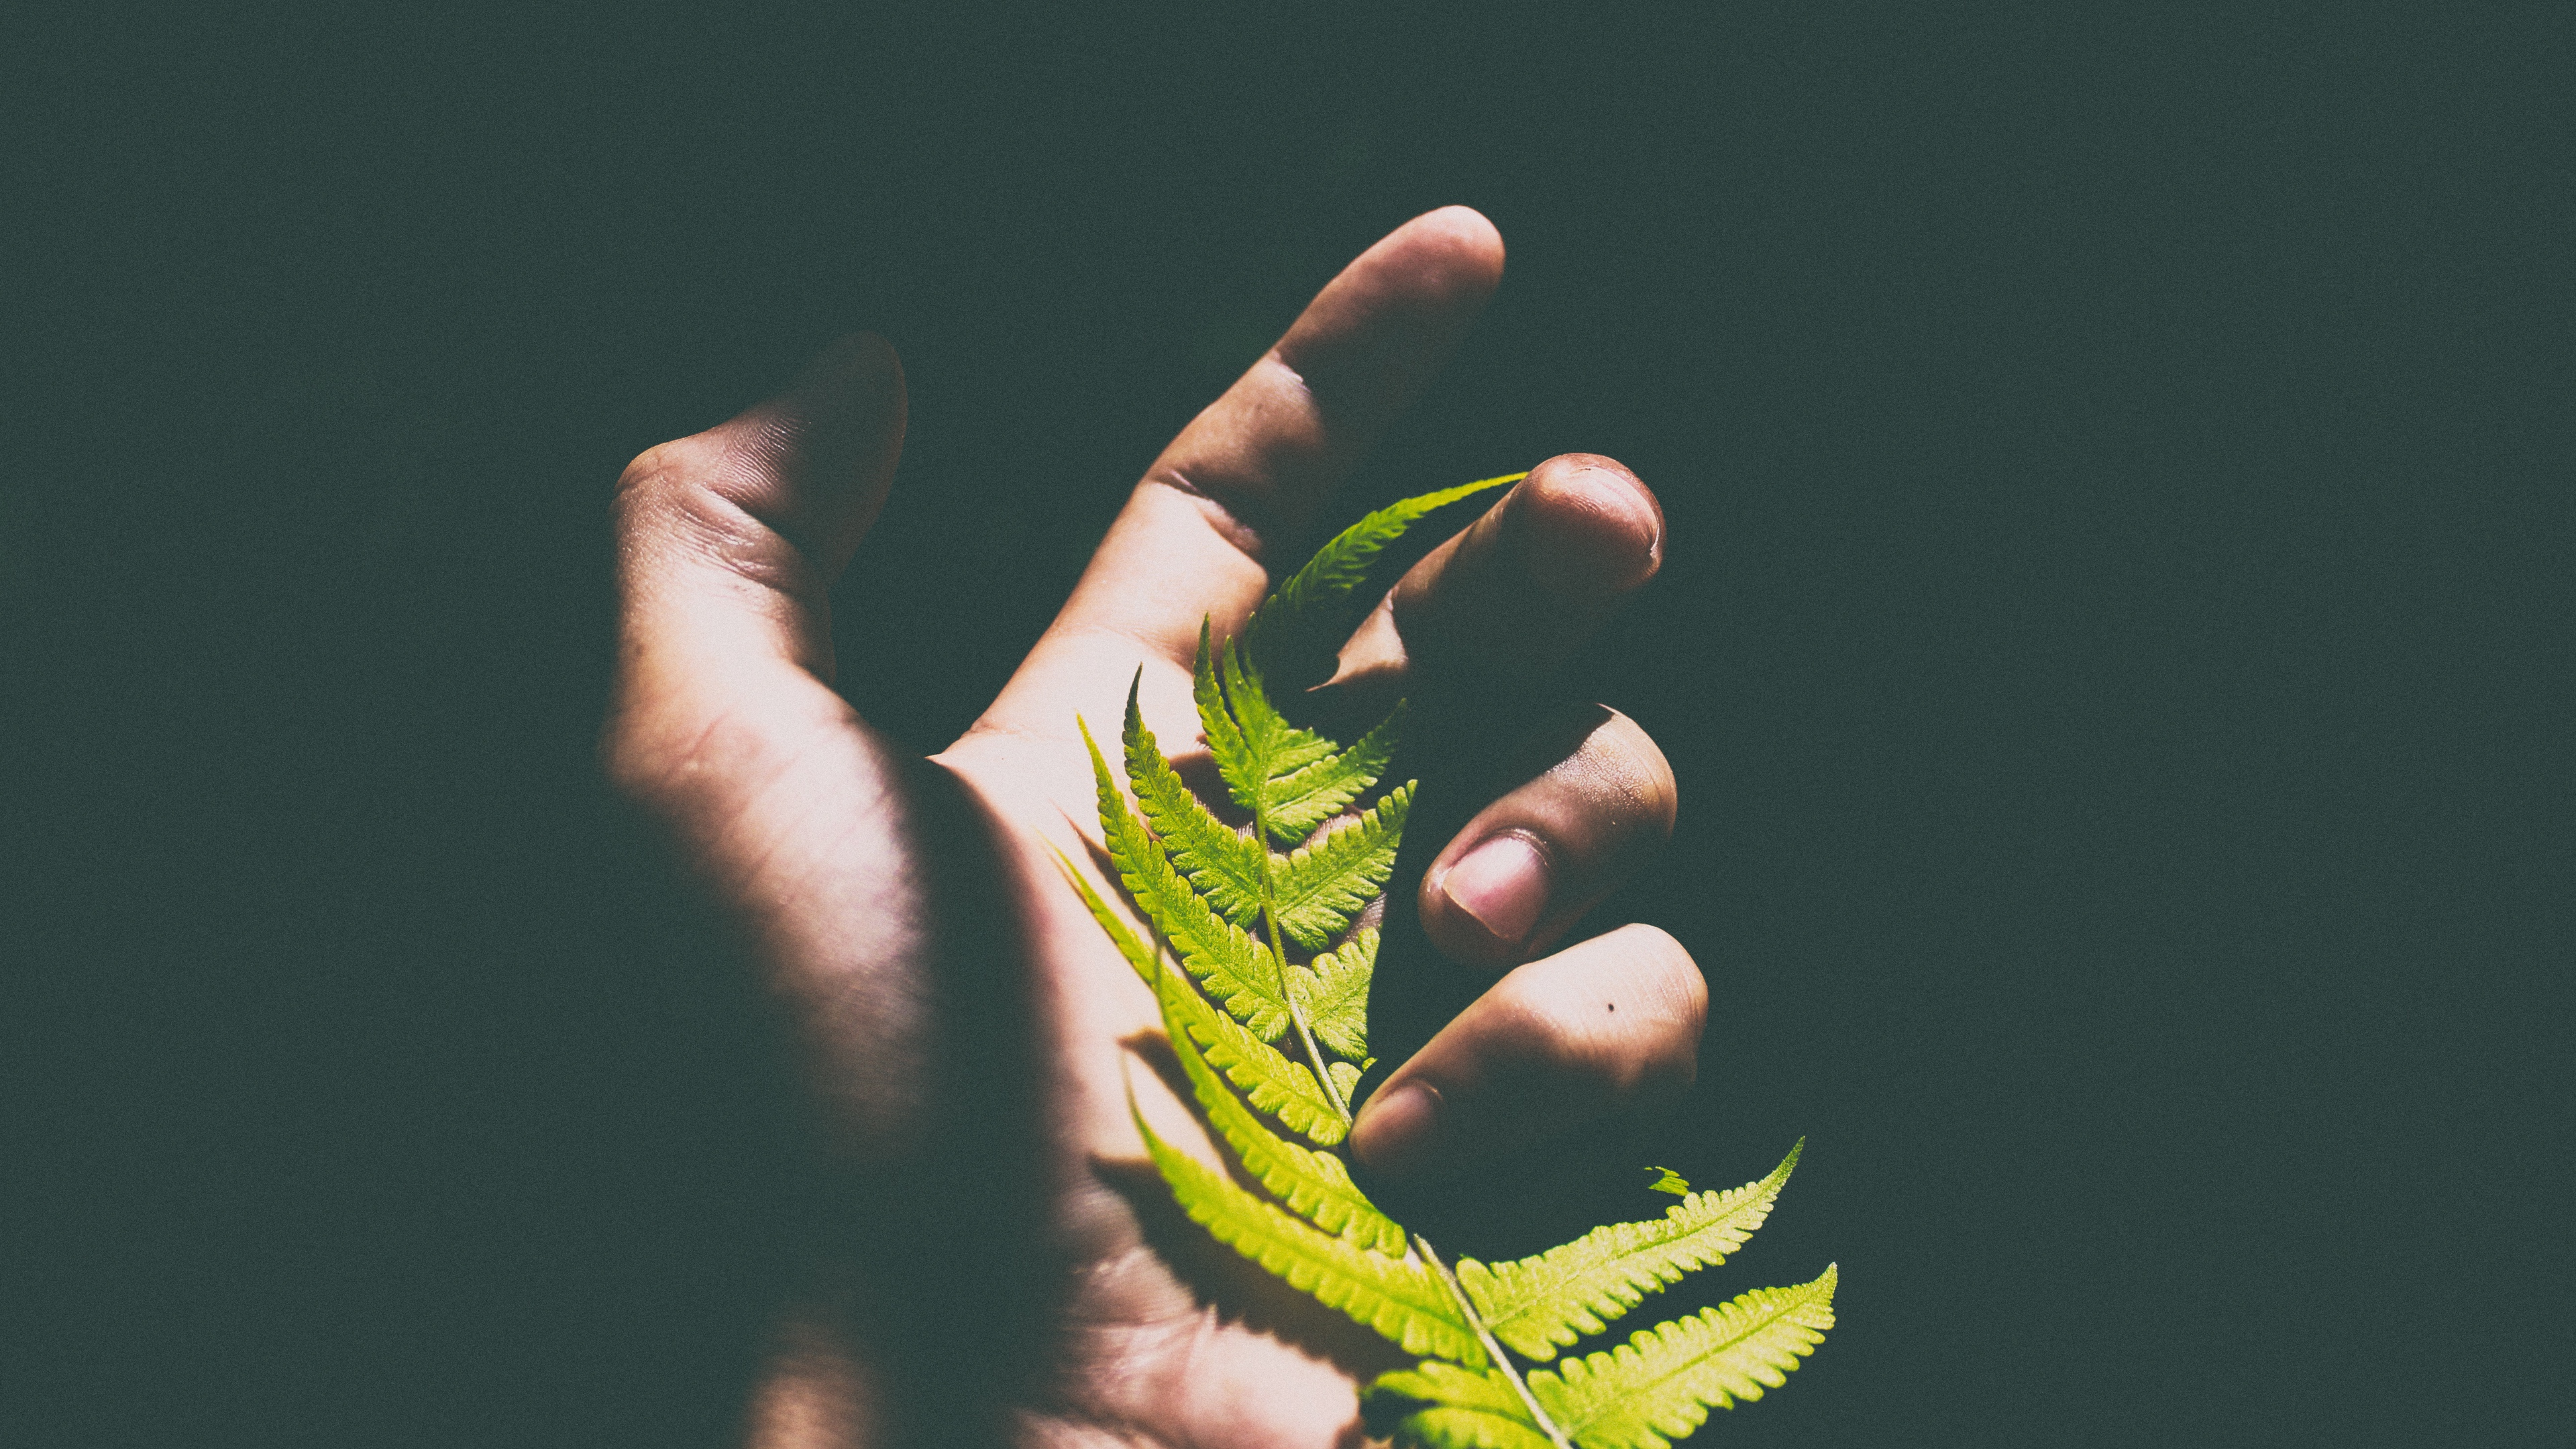 Wallpaper 4k Fern Leaf Hand Shadow 4k Fern Hand Leaf